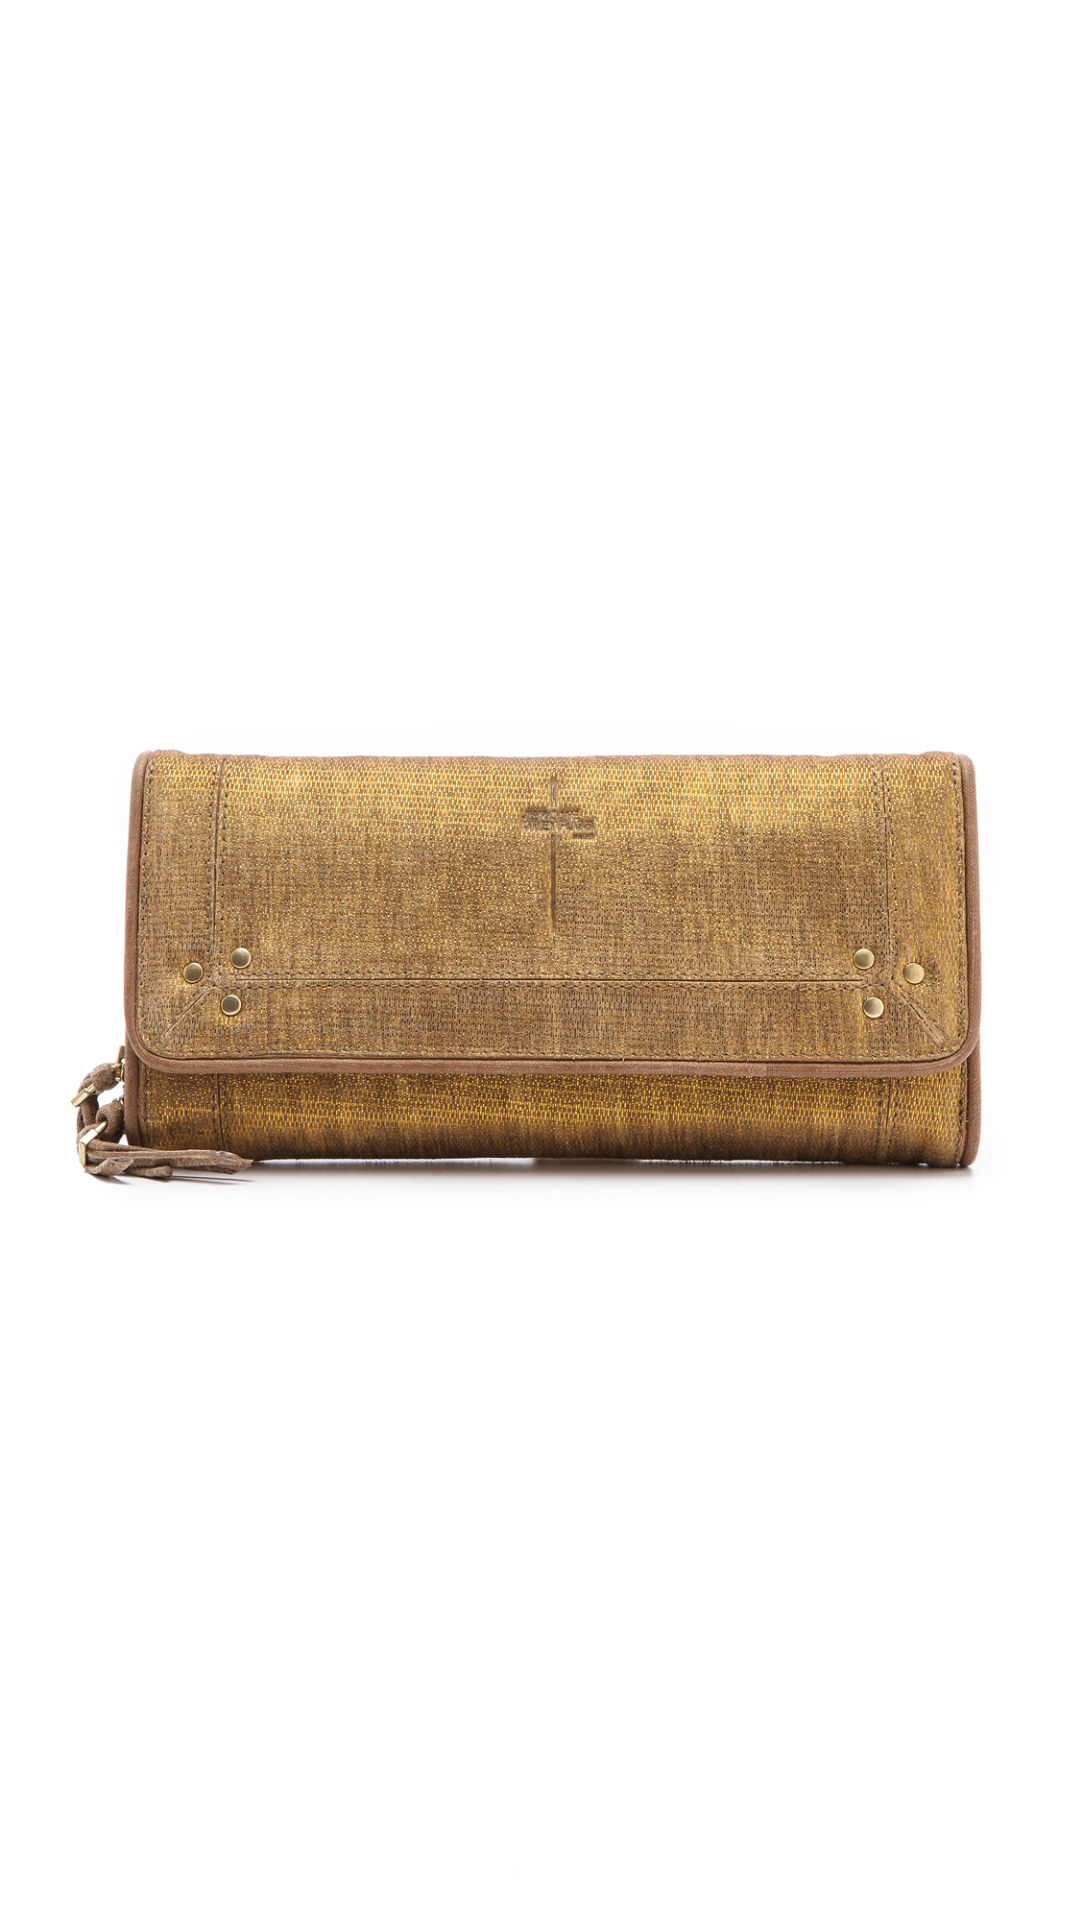 wantering:  Jerome Dreyfuss Paf Wallet Clutch